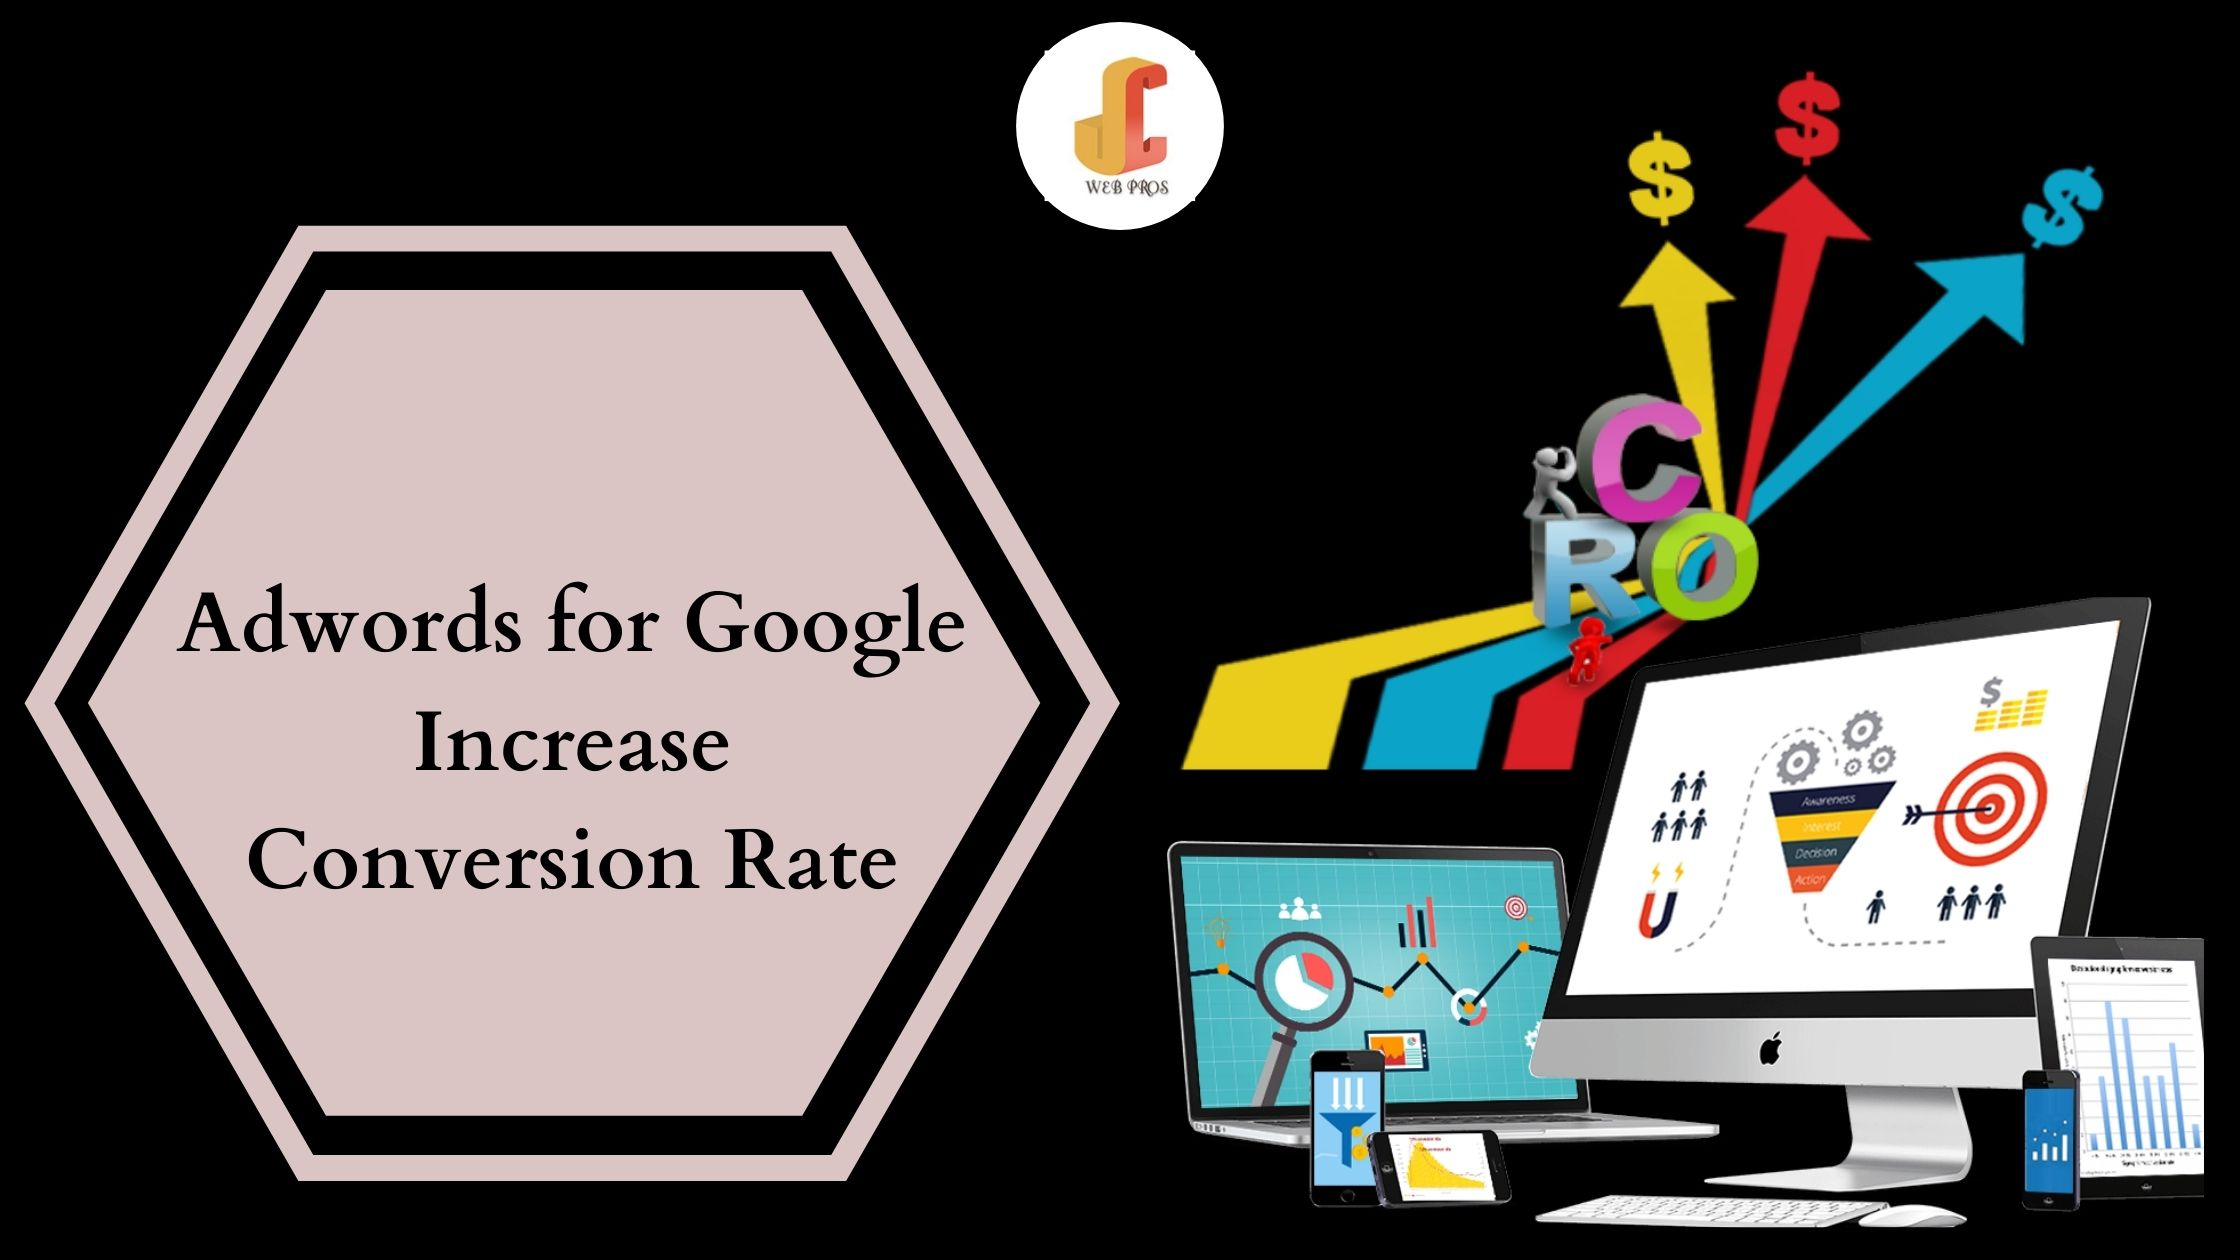 Adwords for Google Increases Conversion Rate